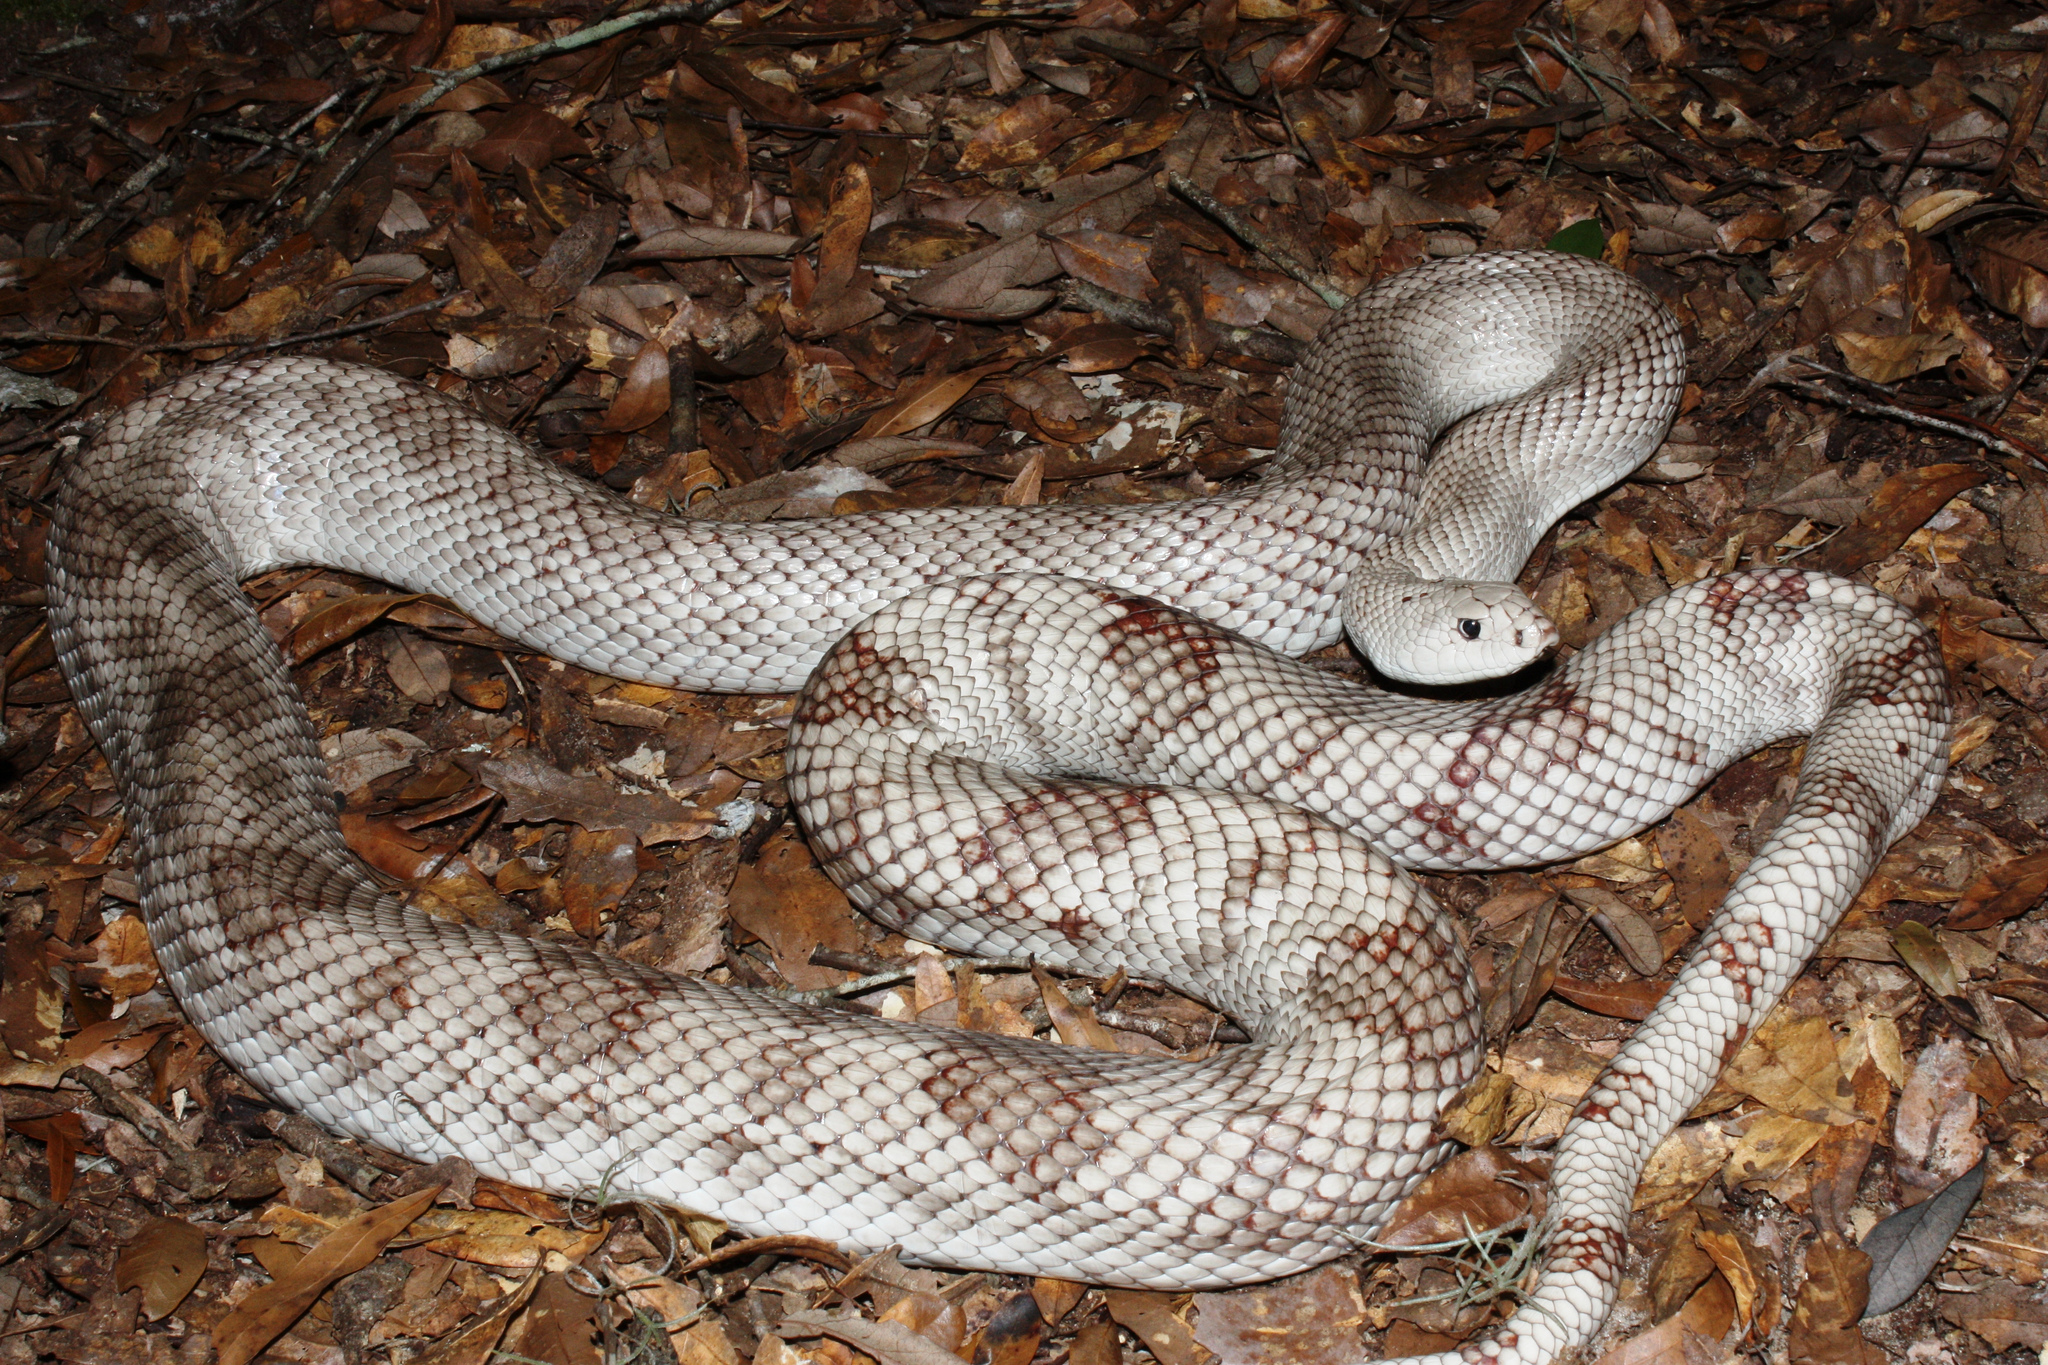 For STO 01202017, CONSERVATION, picture 3of3, Florida Pine Snake